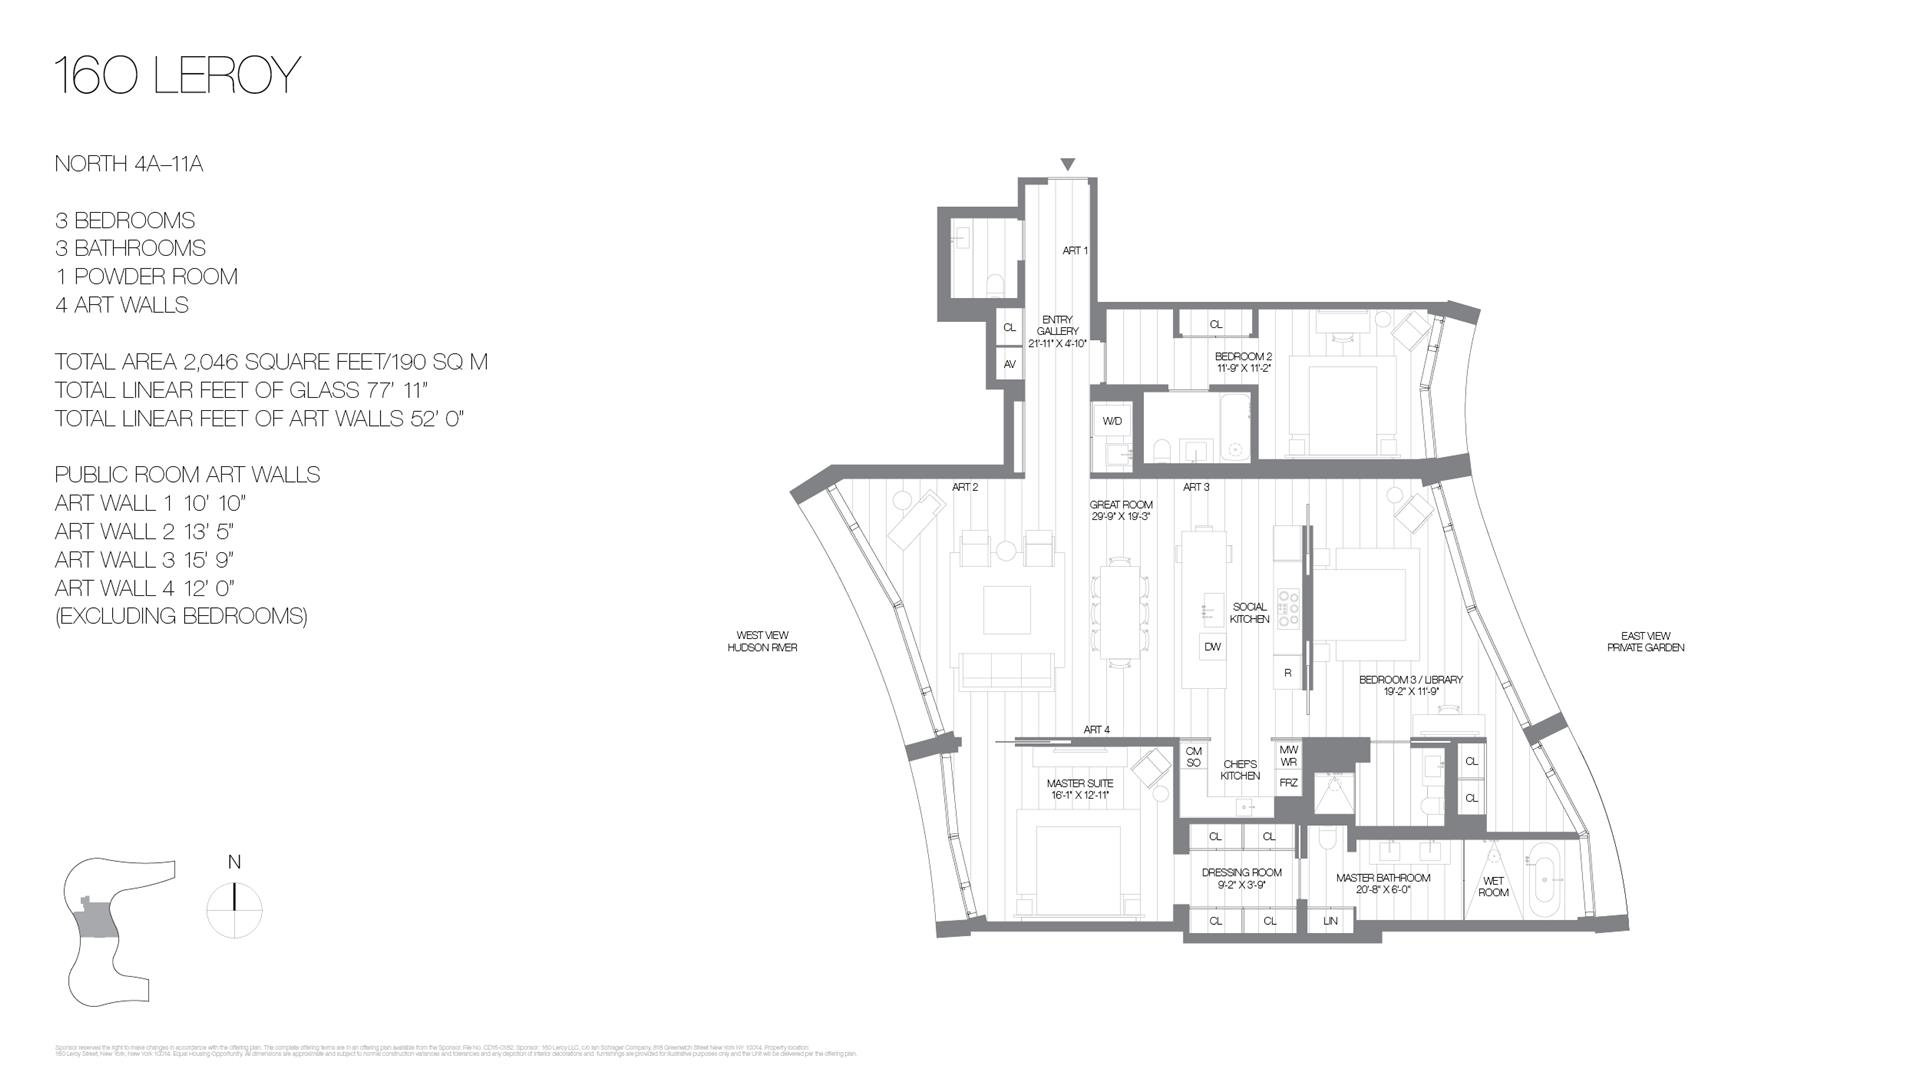 Floor plan of 160 Leroy St, NORTH5A - West Village - Meatpacking District, New York